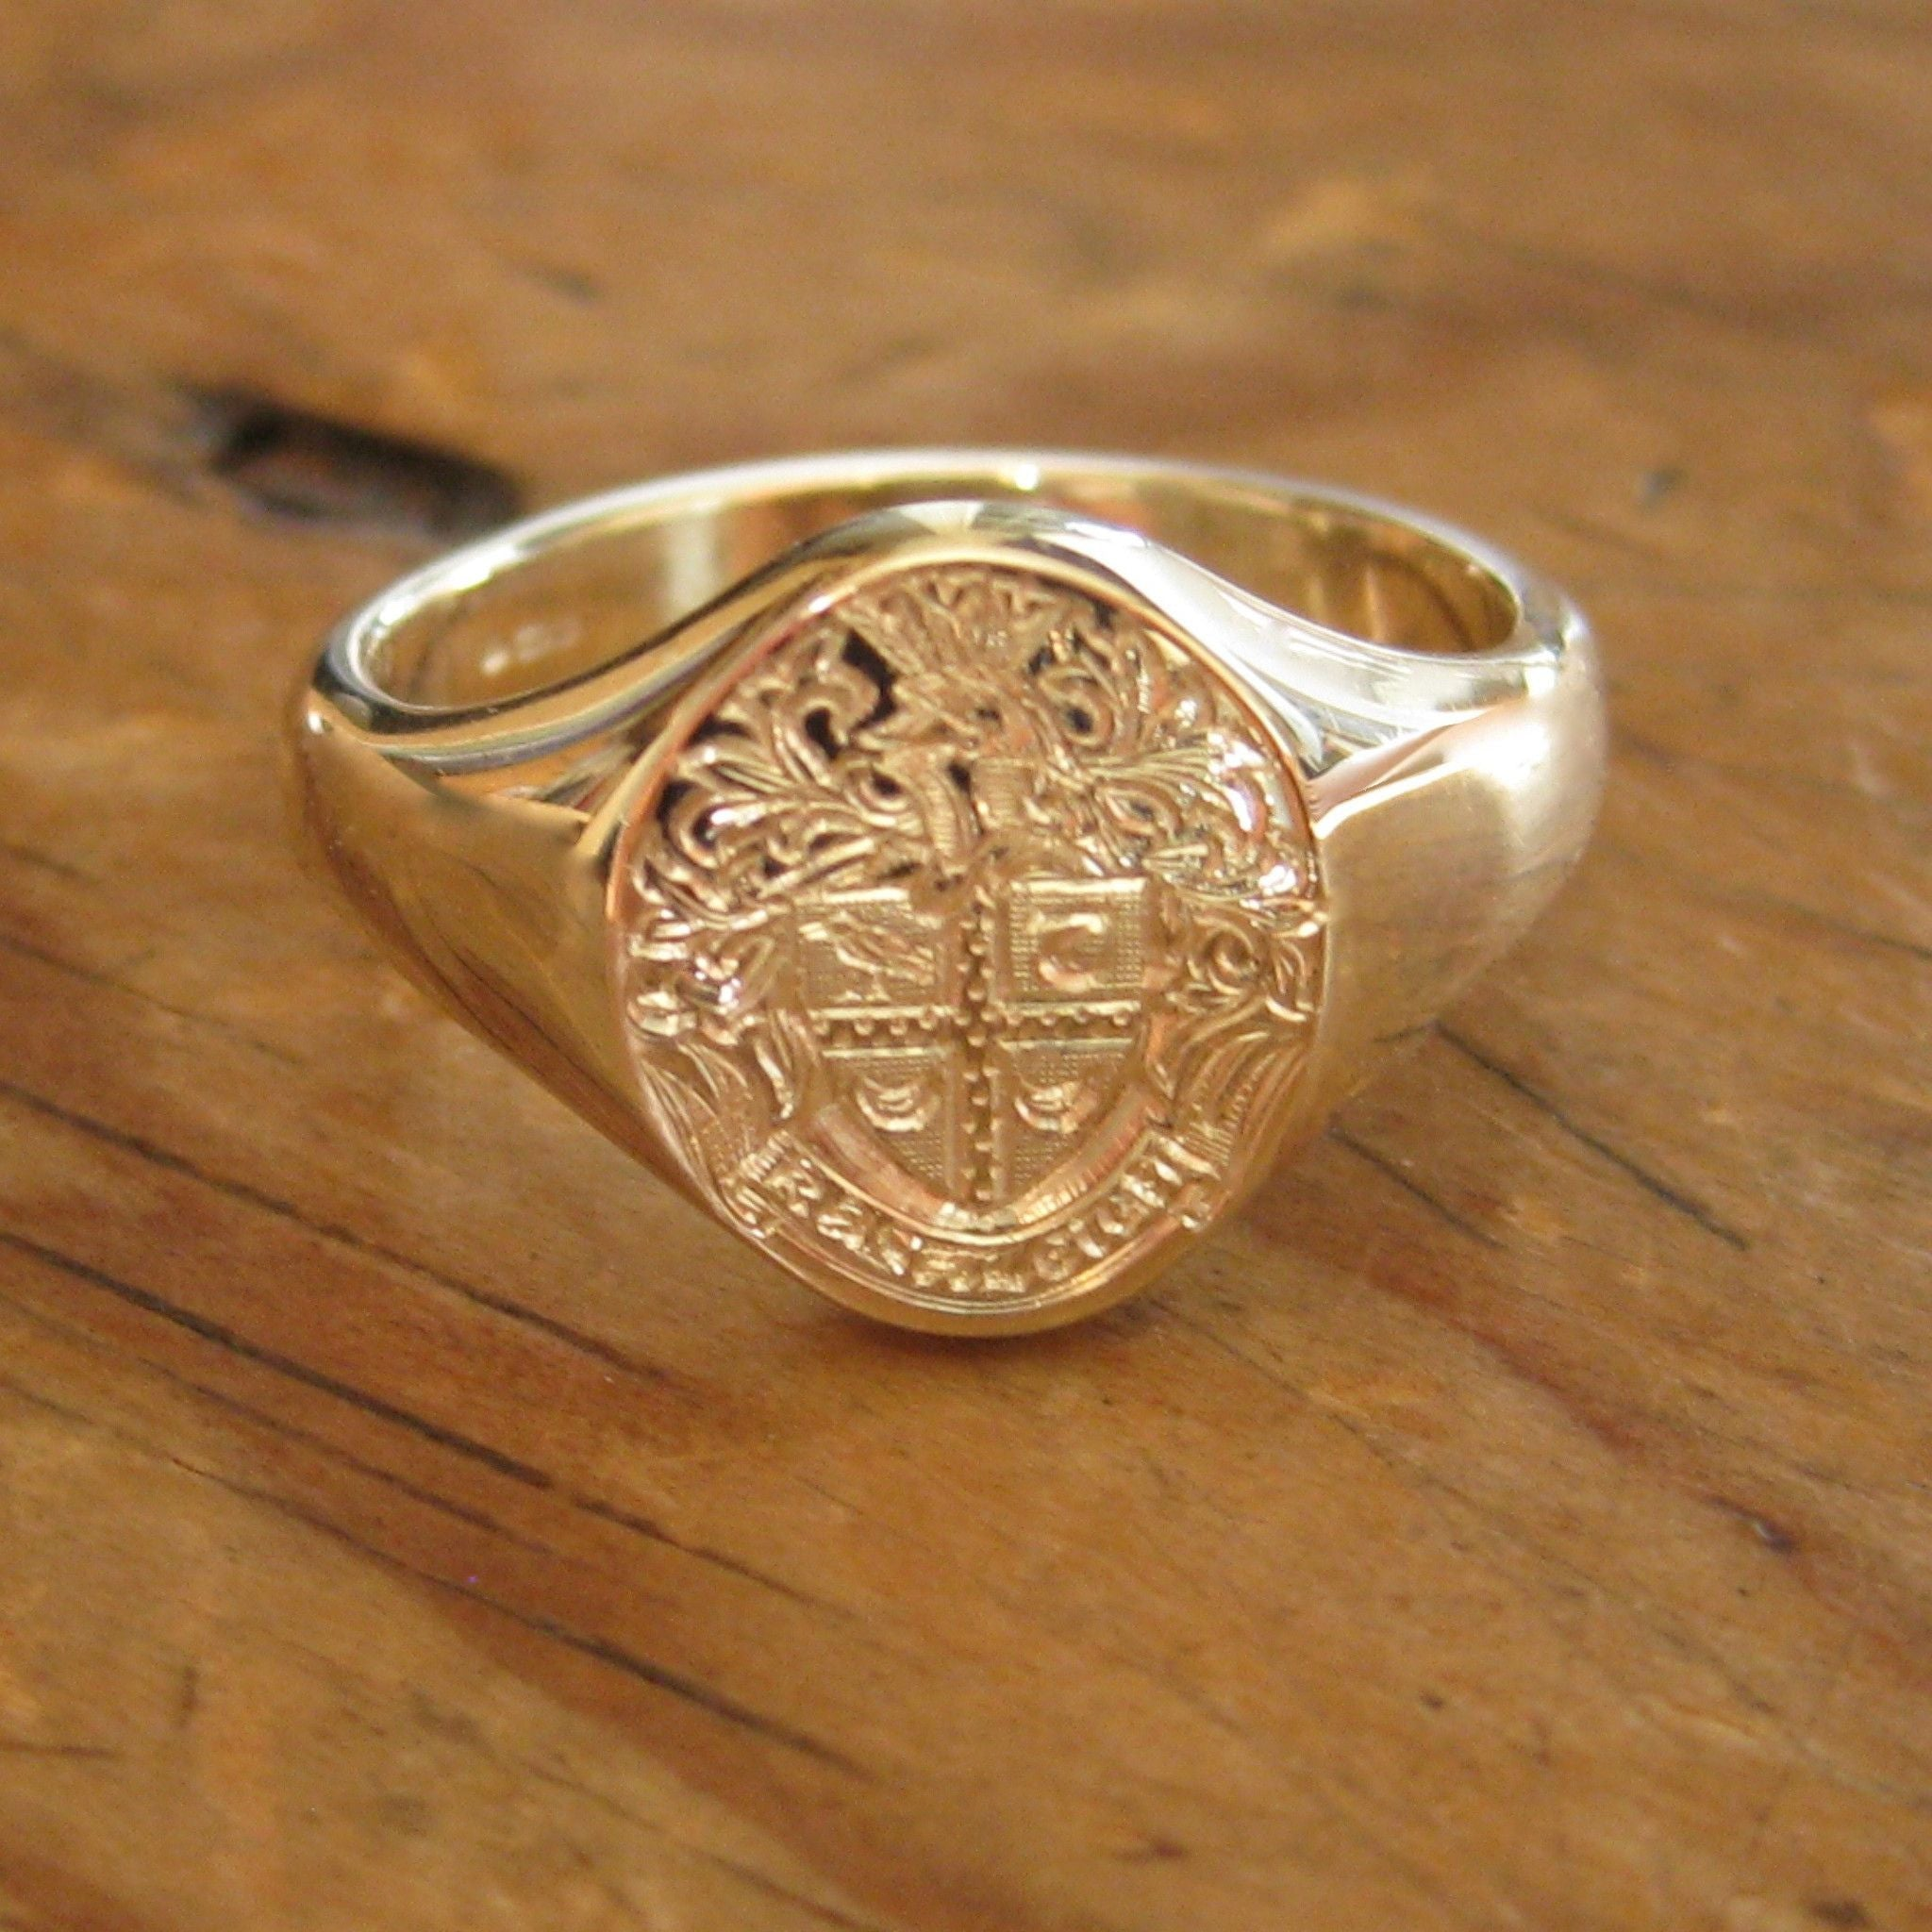 centenary c rings irish to ringc jewellery stokers honour the death crest sellors of w bram